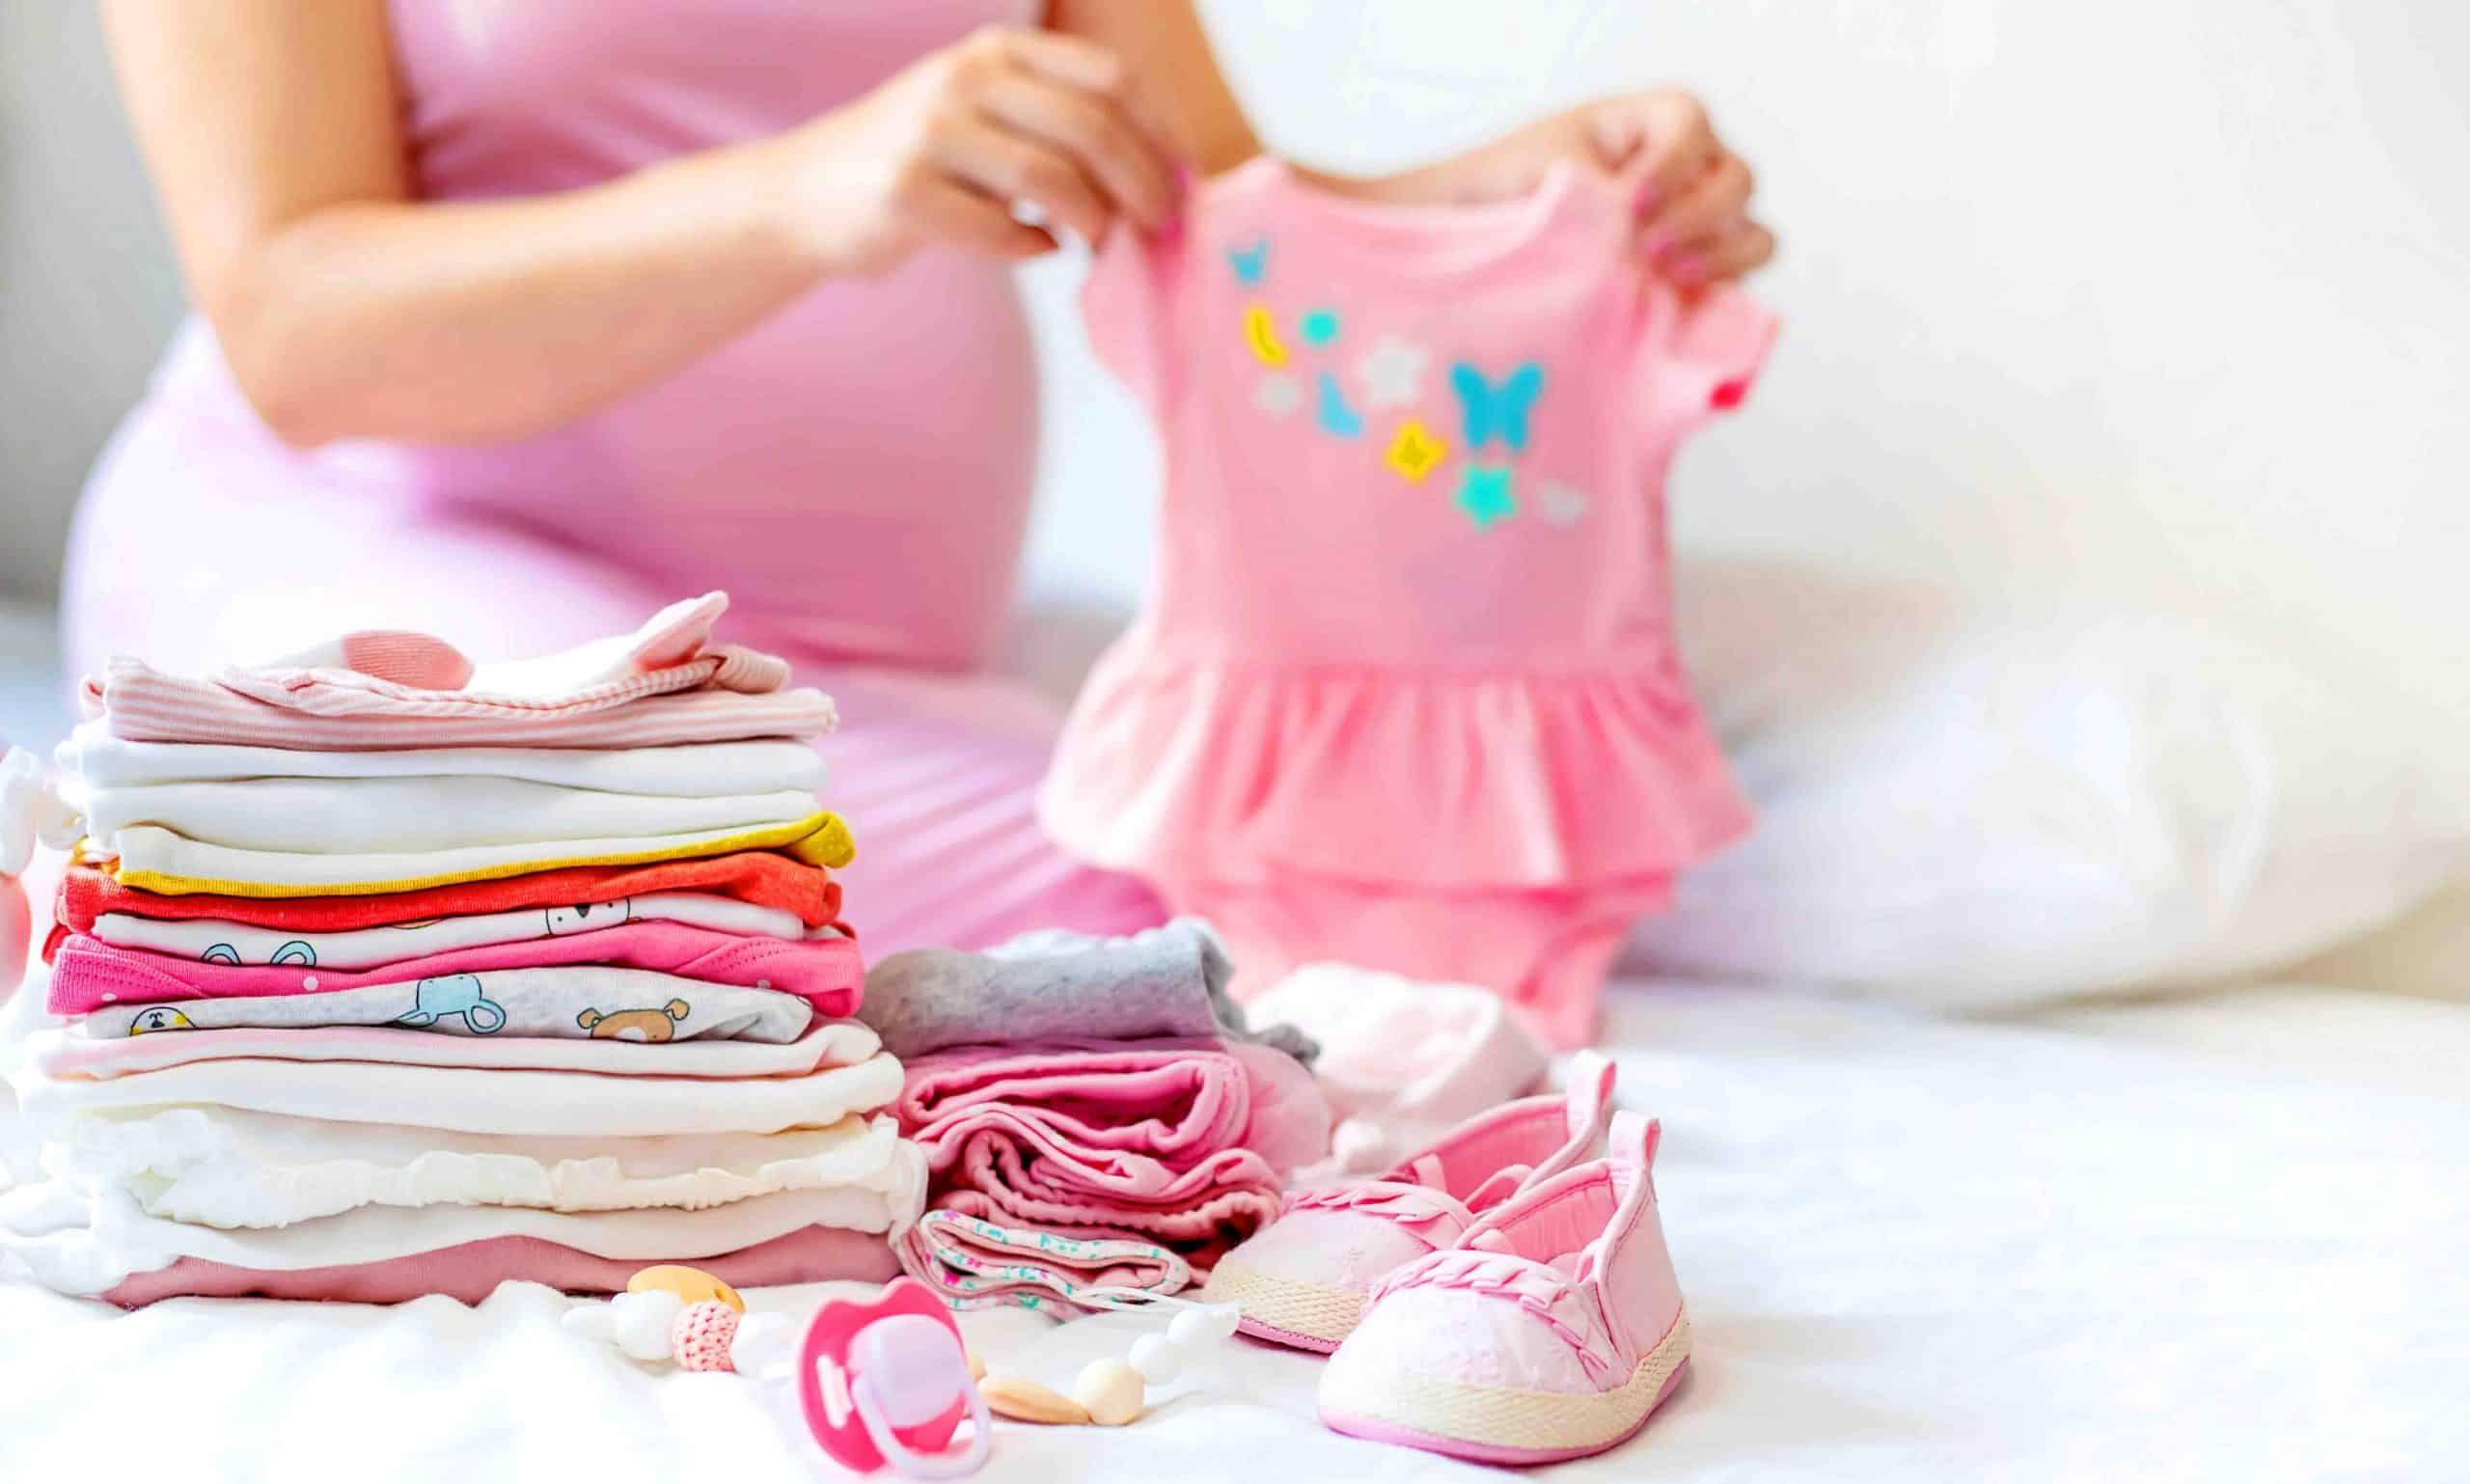 13 Secrets For New Parents to Care For Newborn Baby Clothes (Wash, Organize, Store)